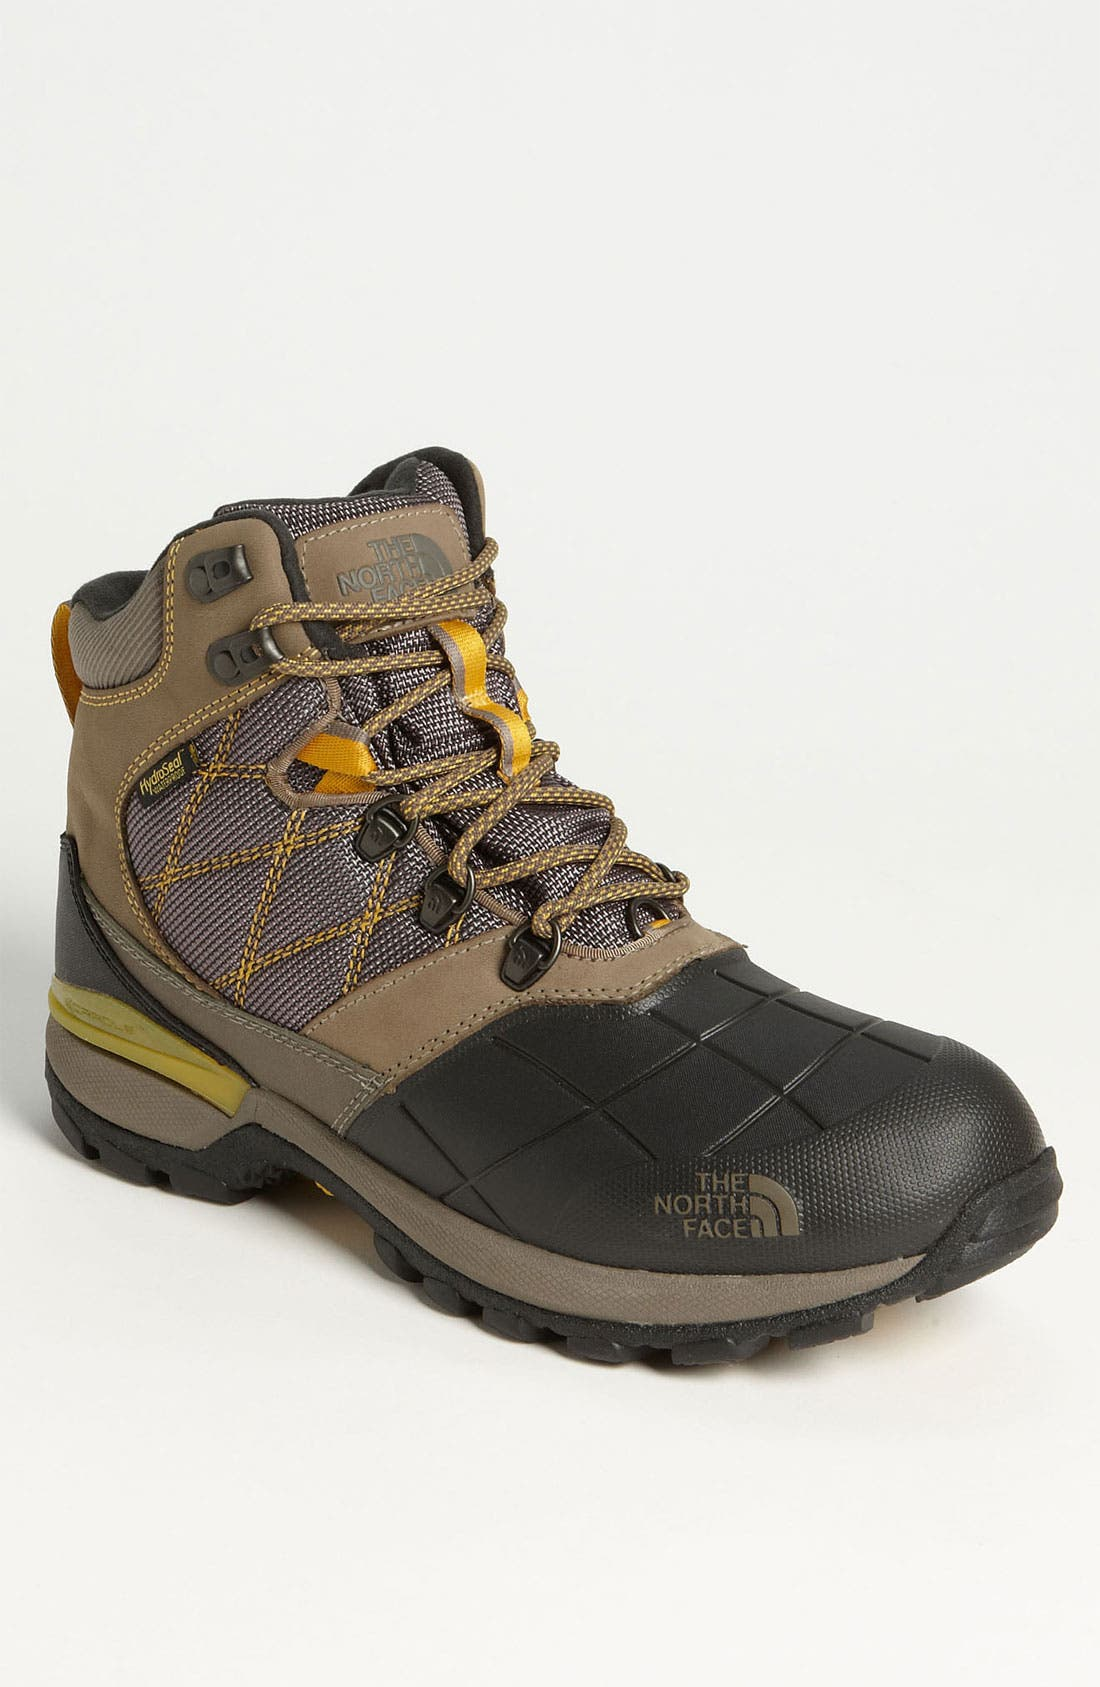 Alternate Image 1 Selected - The North Face 'Snowsquall' Snow Boot